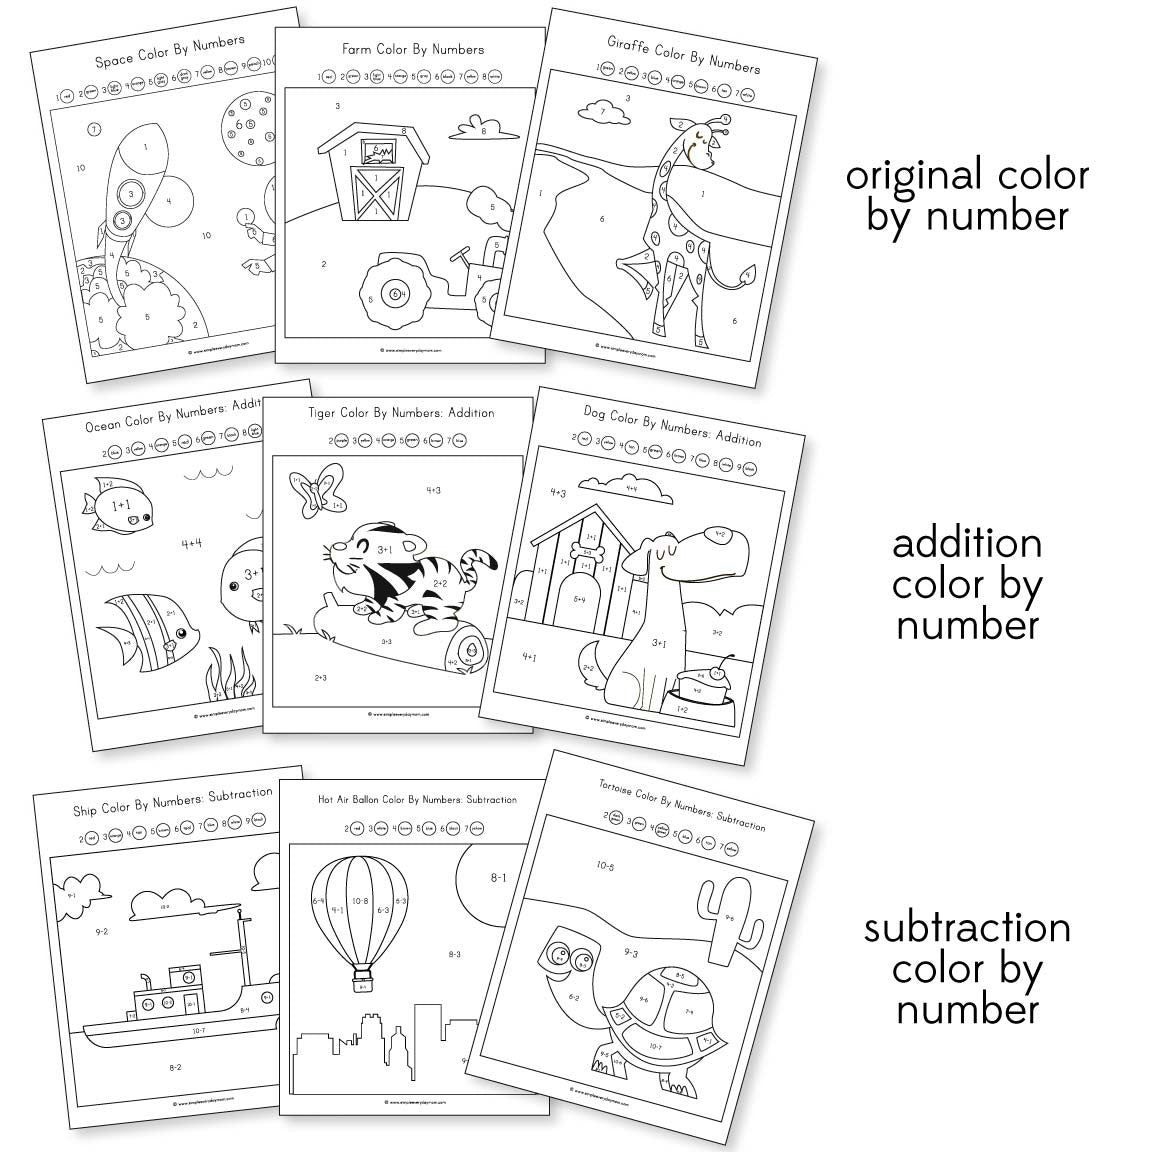 Worksheet. 9 Fun Color By Number Worksheets That Teach Math The Easy Way